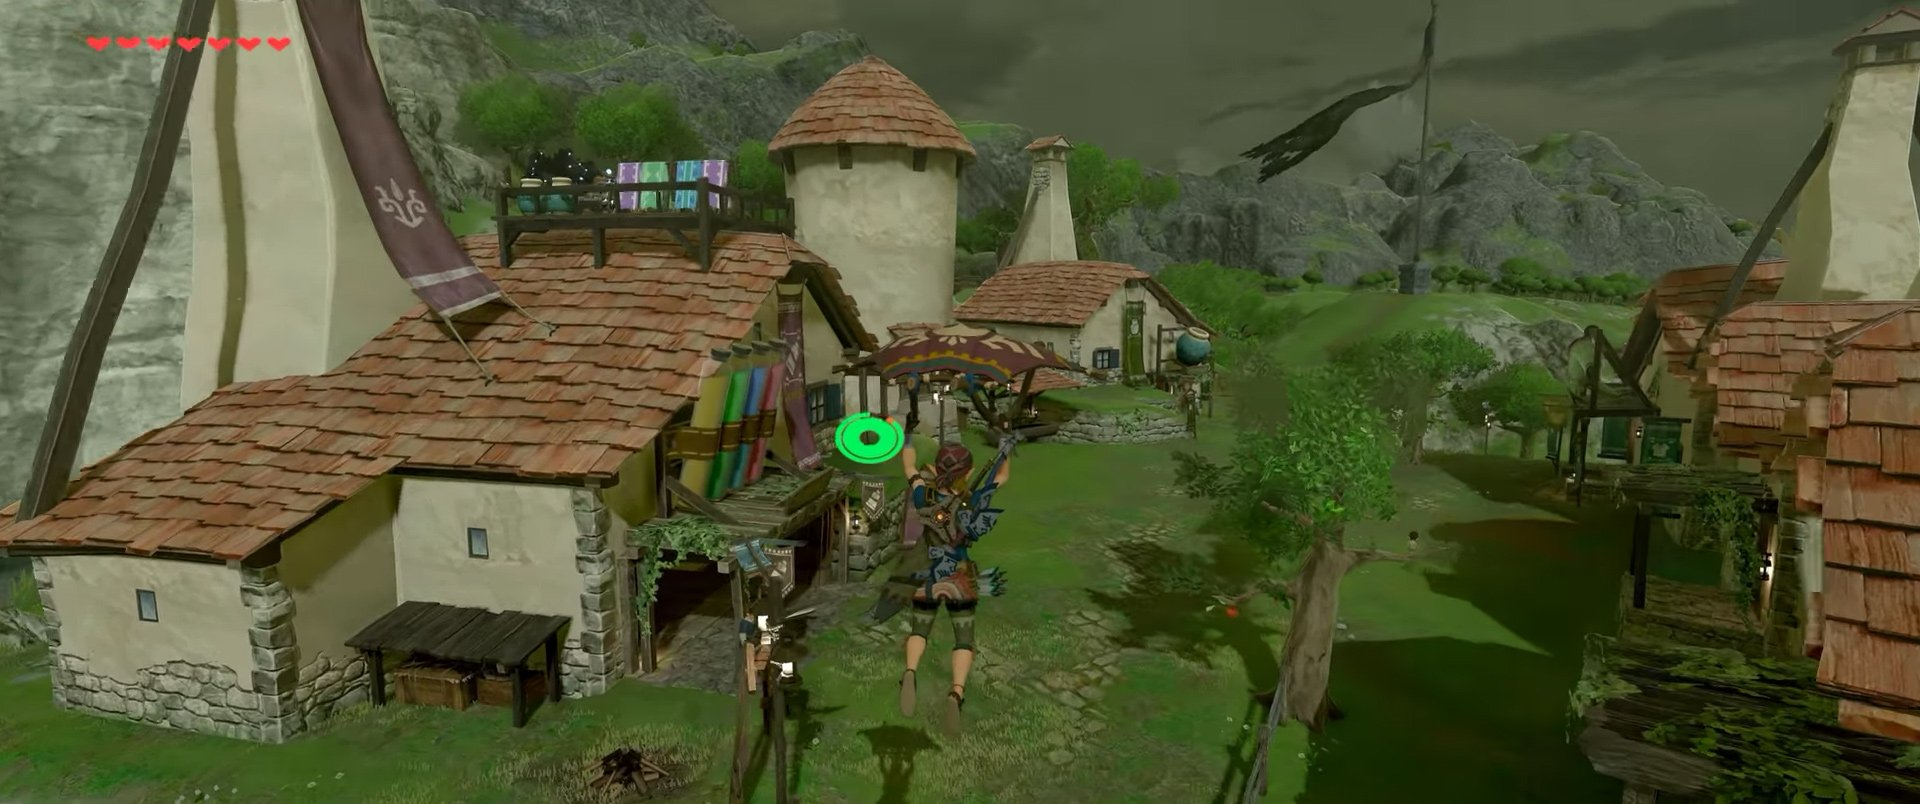 Zelda: Breath of the Wild feels totally different with a realistic look